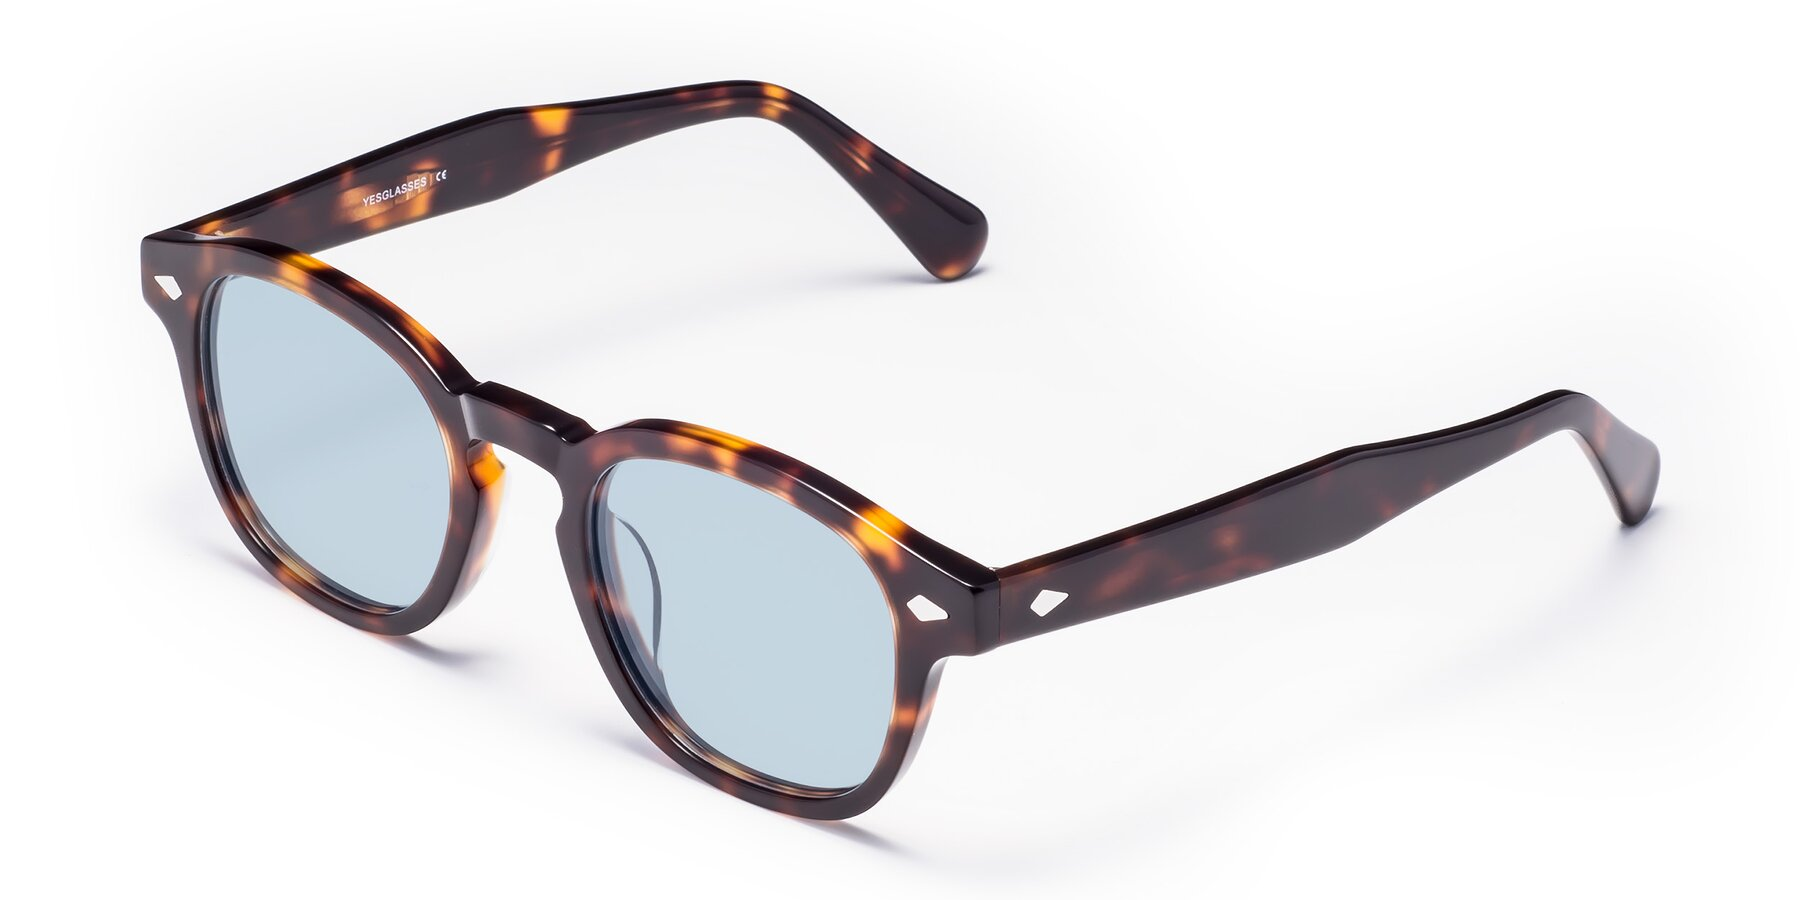 Angle of WALL-E in Tortoise with Light Blue Tinted Lenses